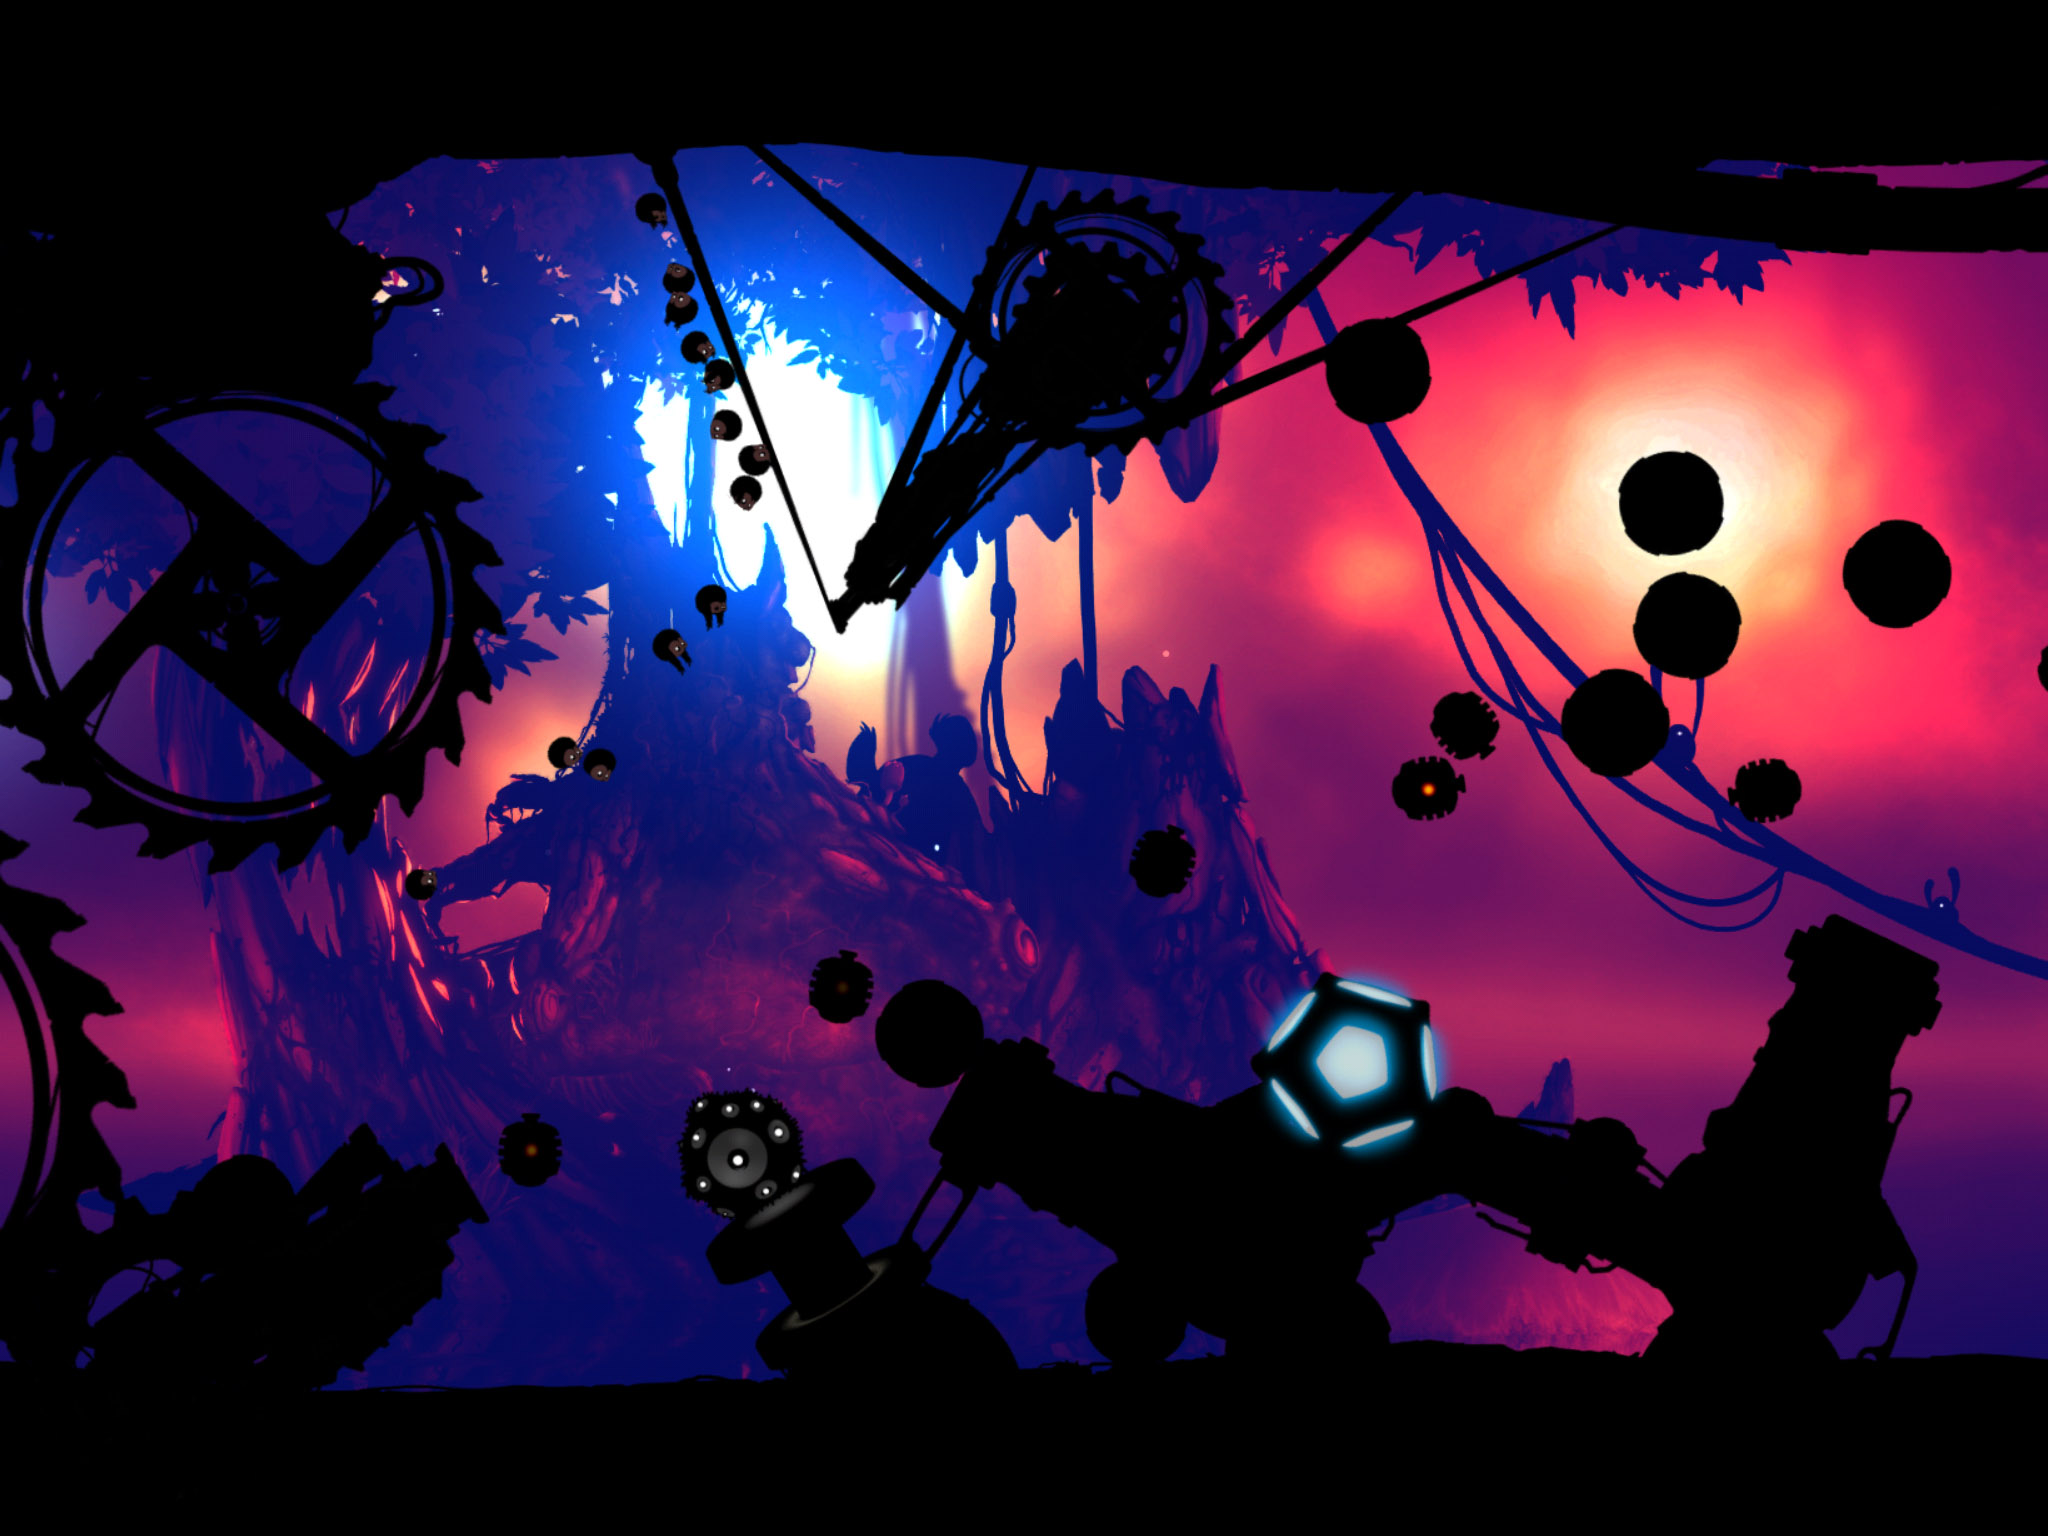 BADLAND - Day II Dusk